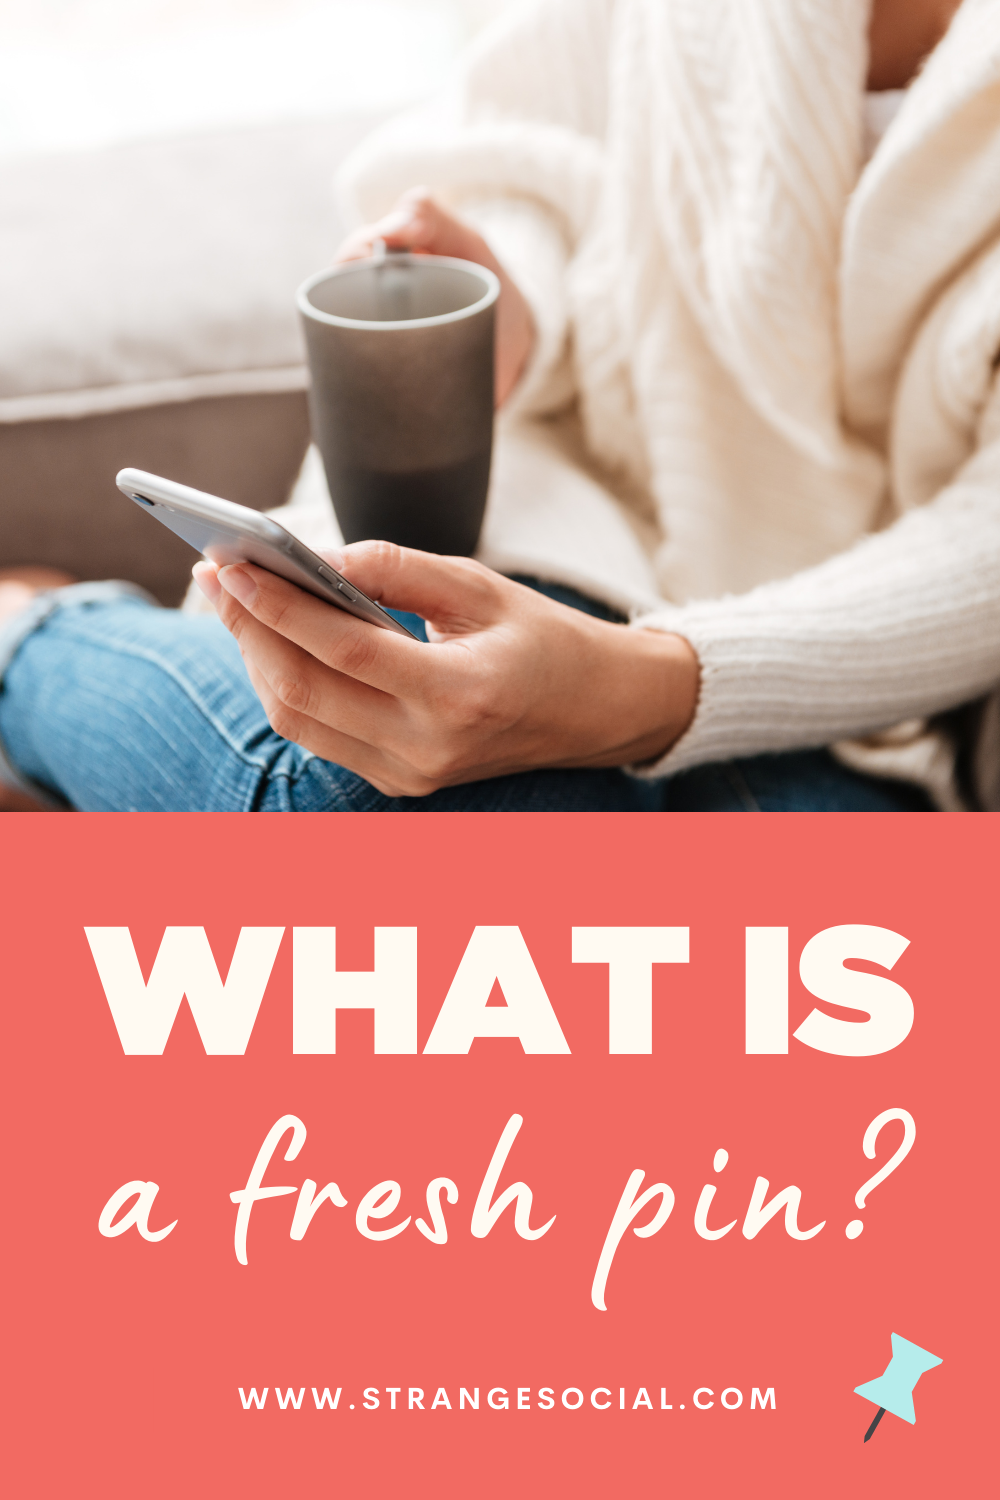 What is a fresh pin? Pinterest tips for Business.